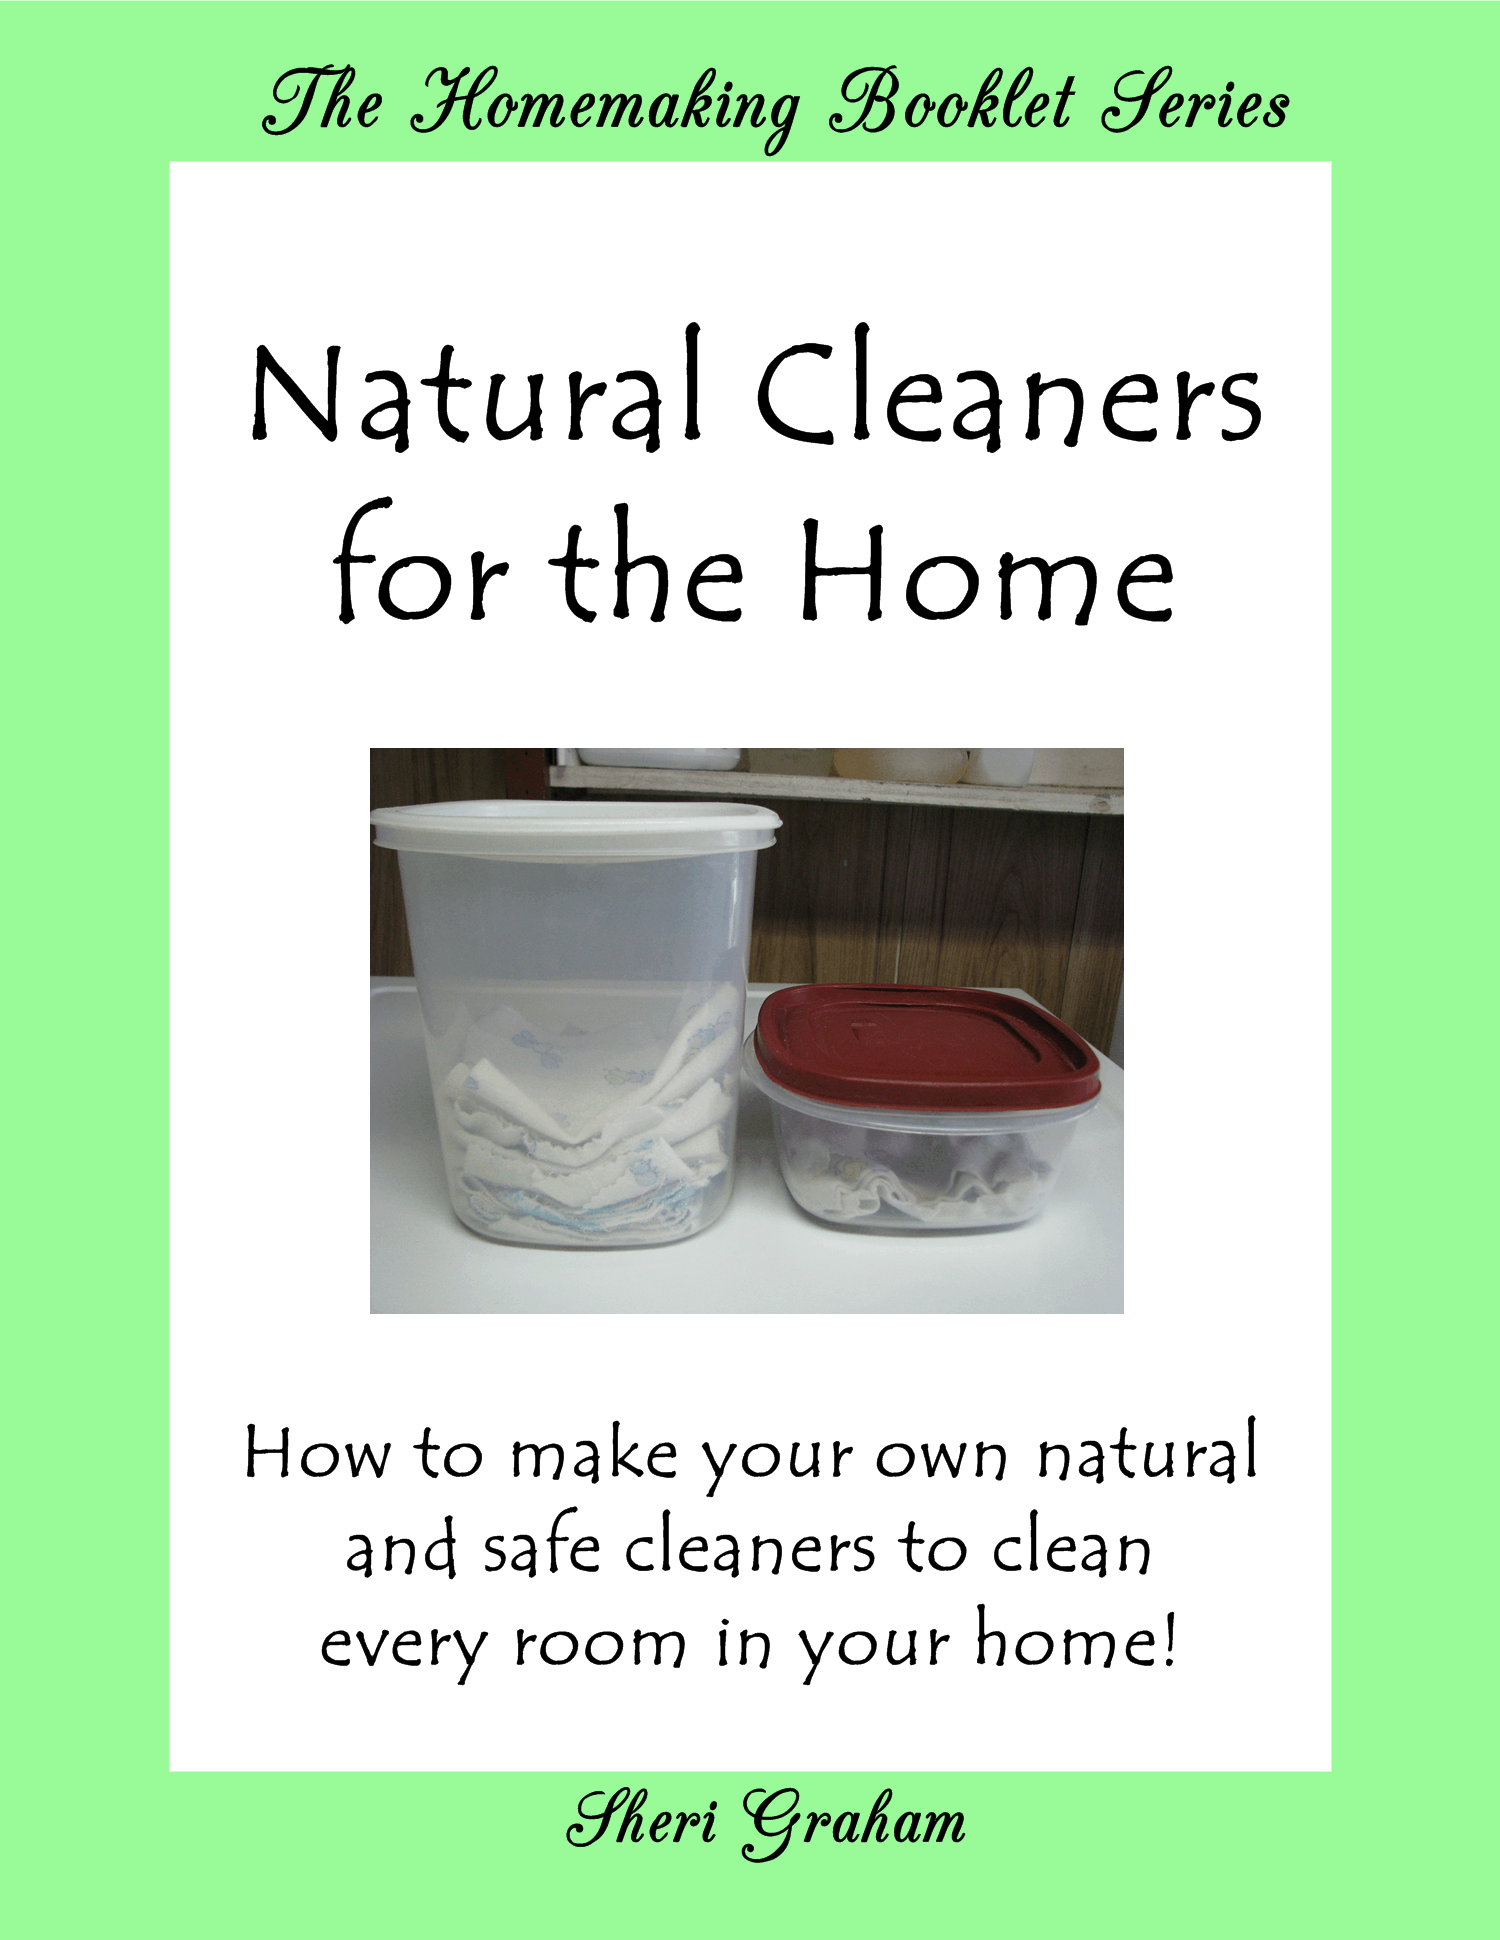 Natural Cleaners for the Home (Kindle book)